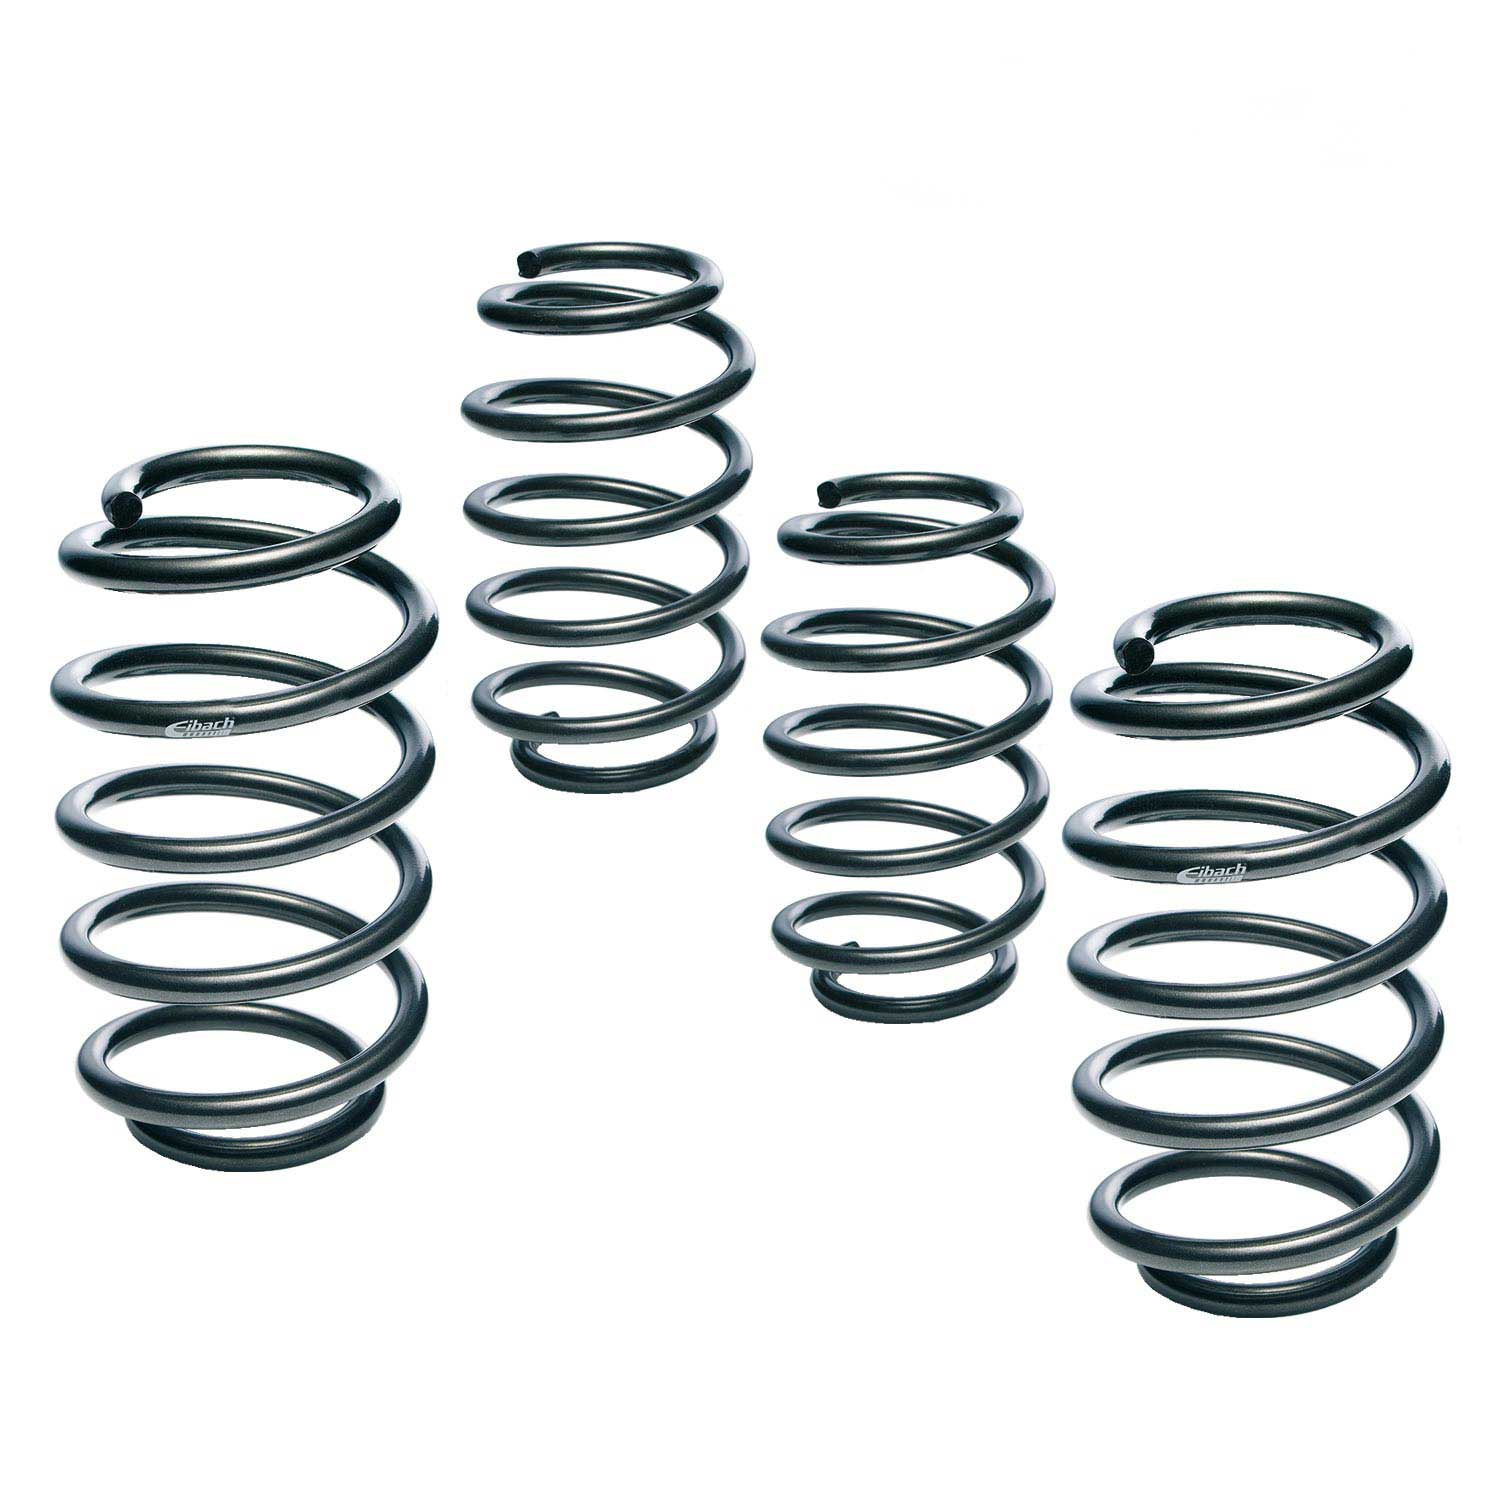 Eibach Pro-Kit Lowering Springs  15-20/5-10mm E10-20-031-18-22 for BMW 4Er